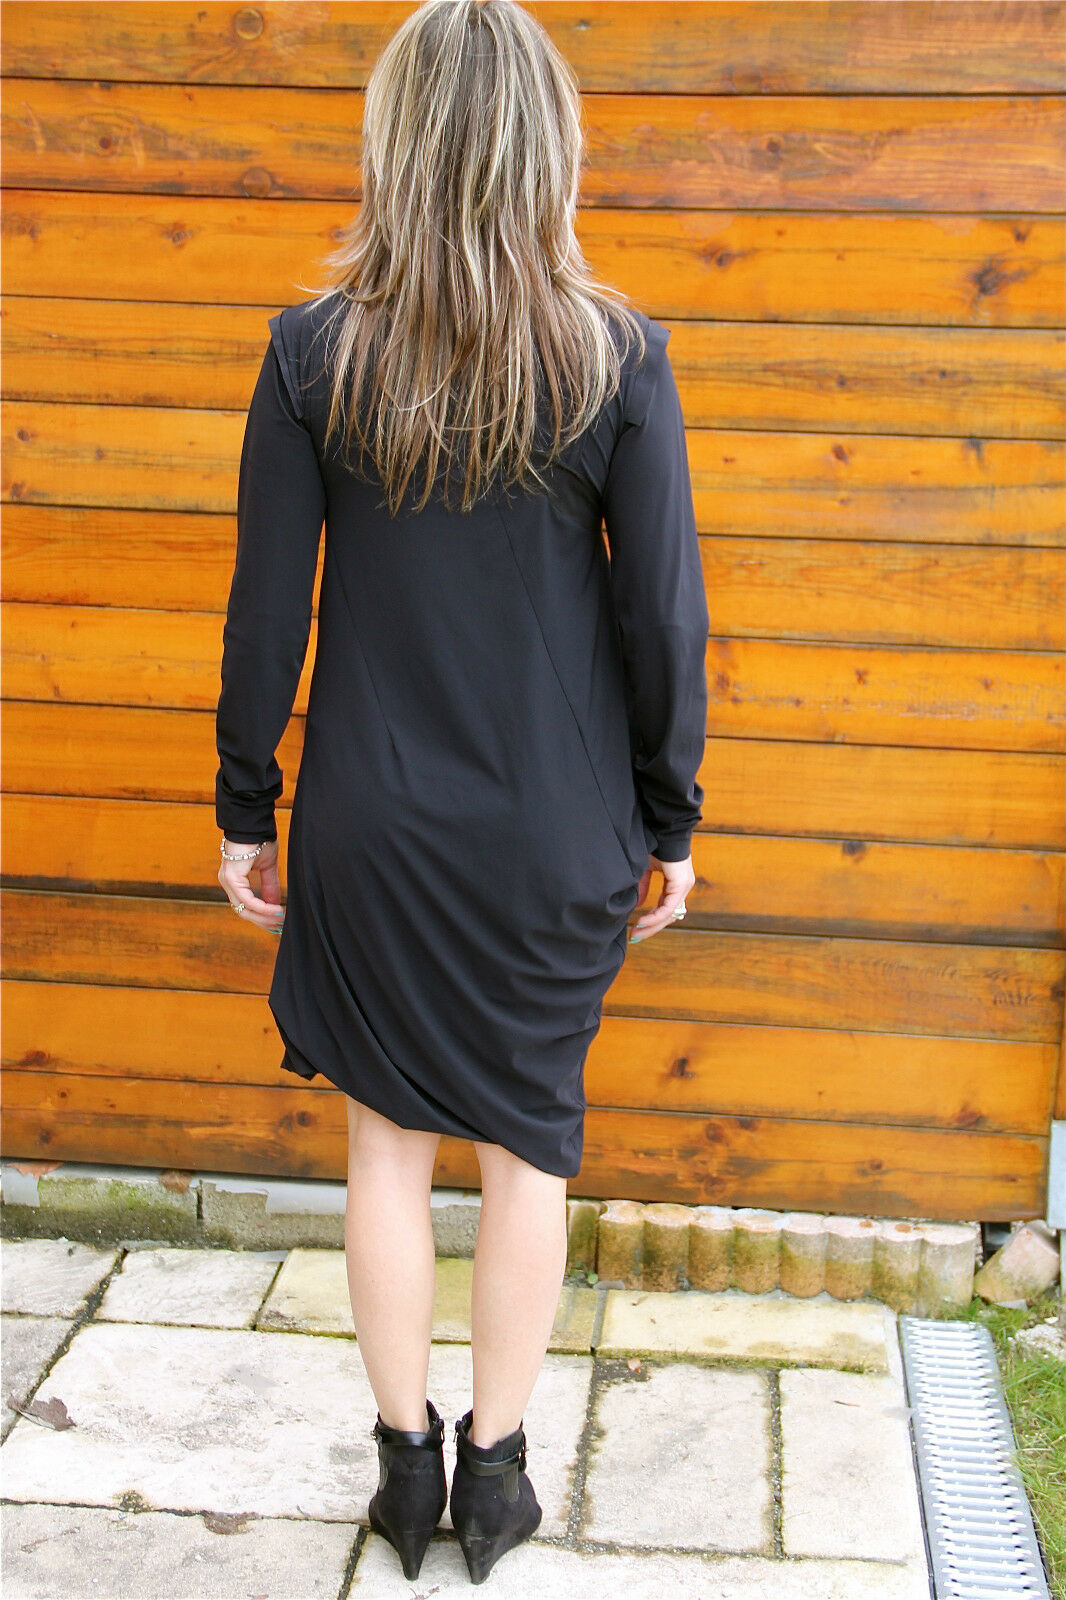 Dress robe superposée MARITHE FRANCOIS GIRBAUD wrapperess T T T 40   NEUVE ÉTIQUETTE f549b8